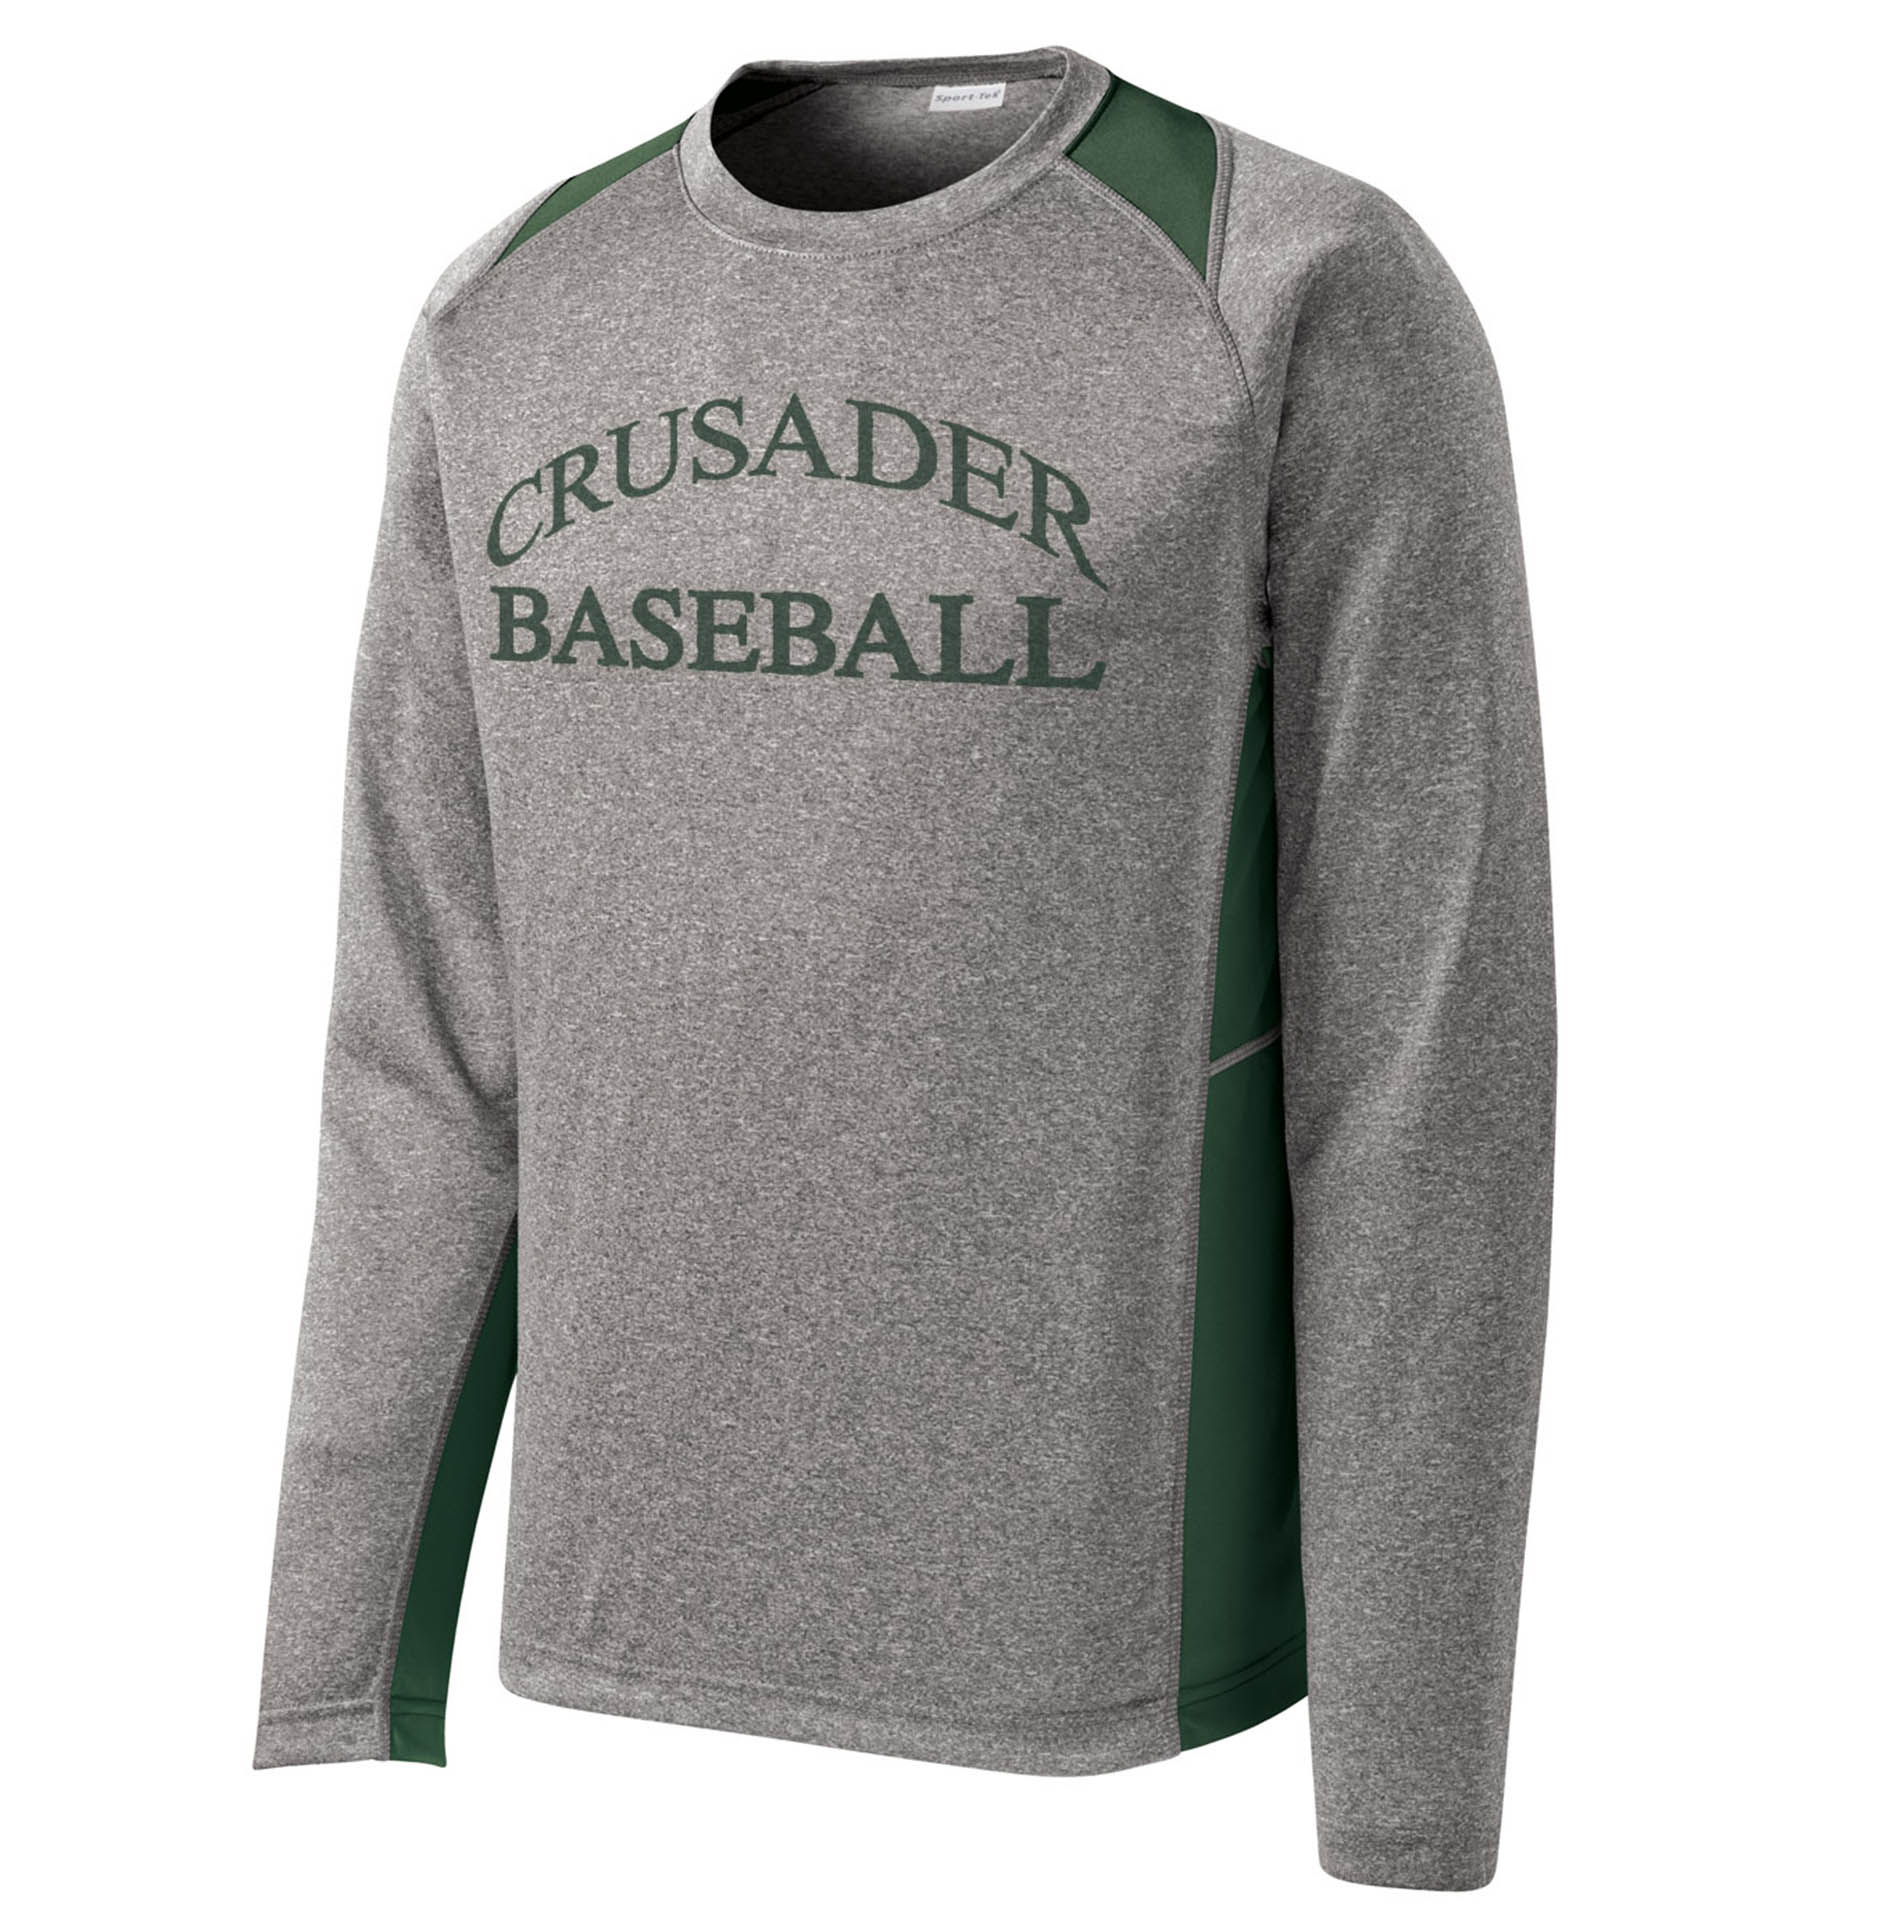 Nwc baseball long sleeve performance t shirt branded for Long sleeve sports shirt